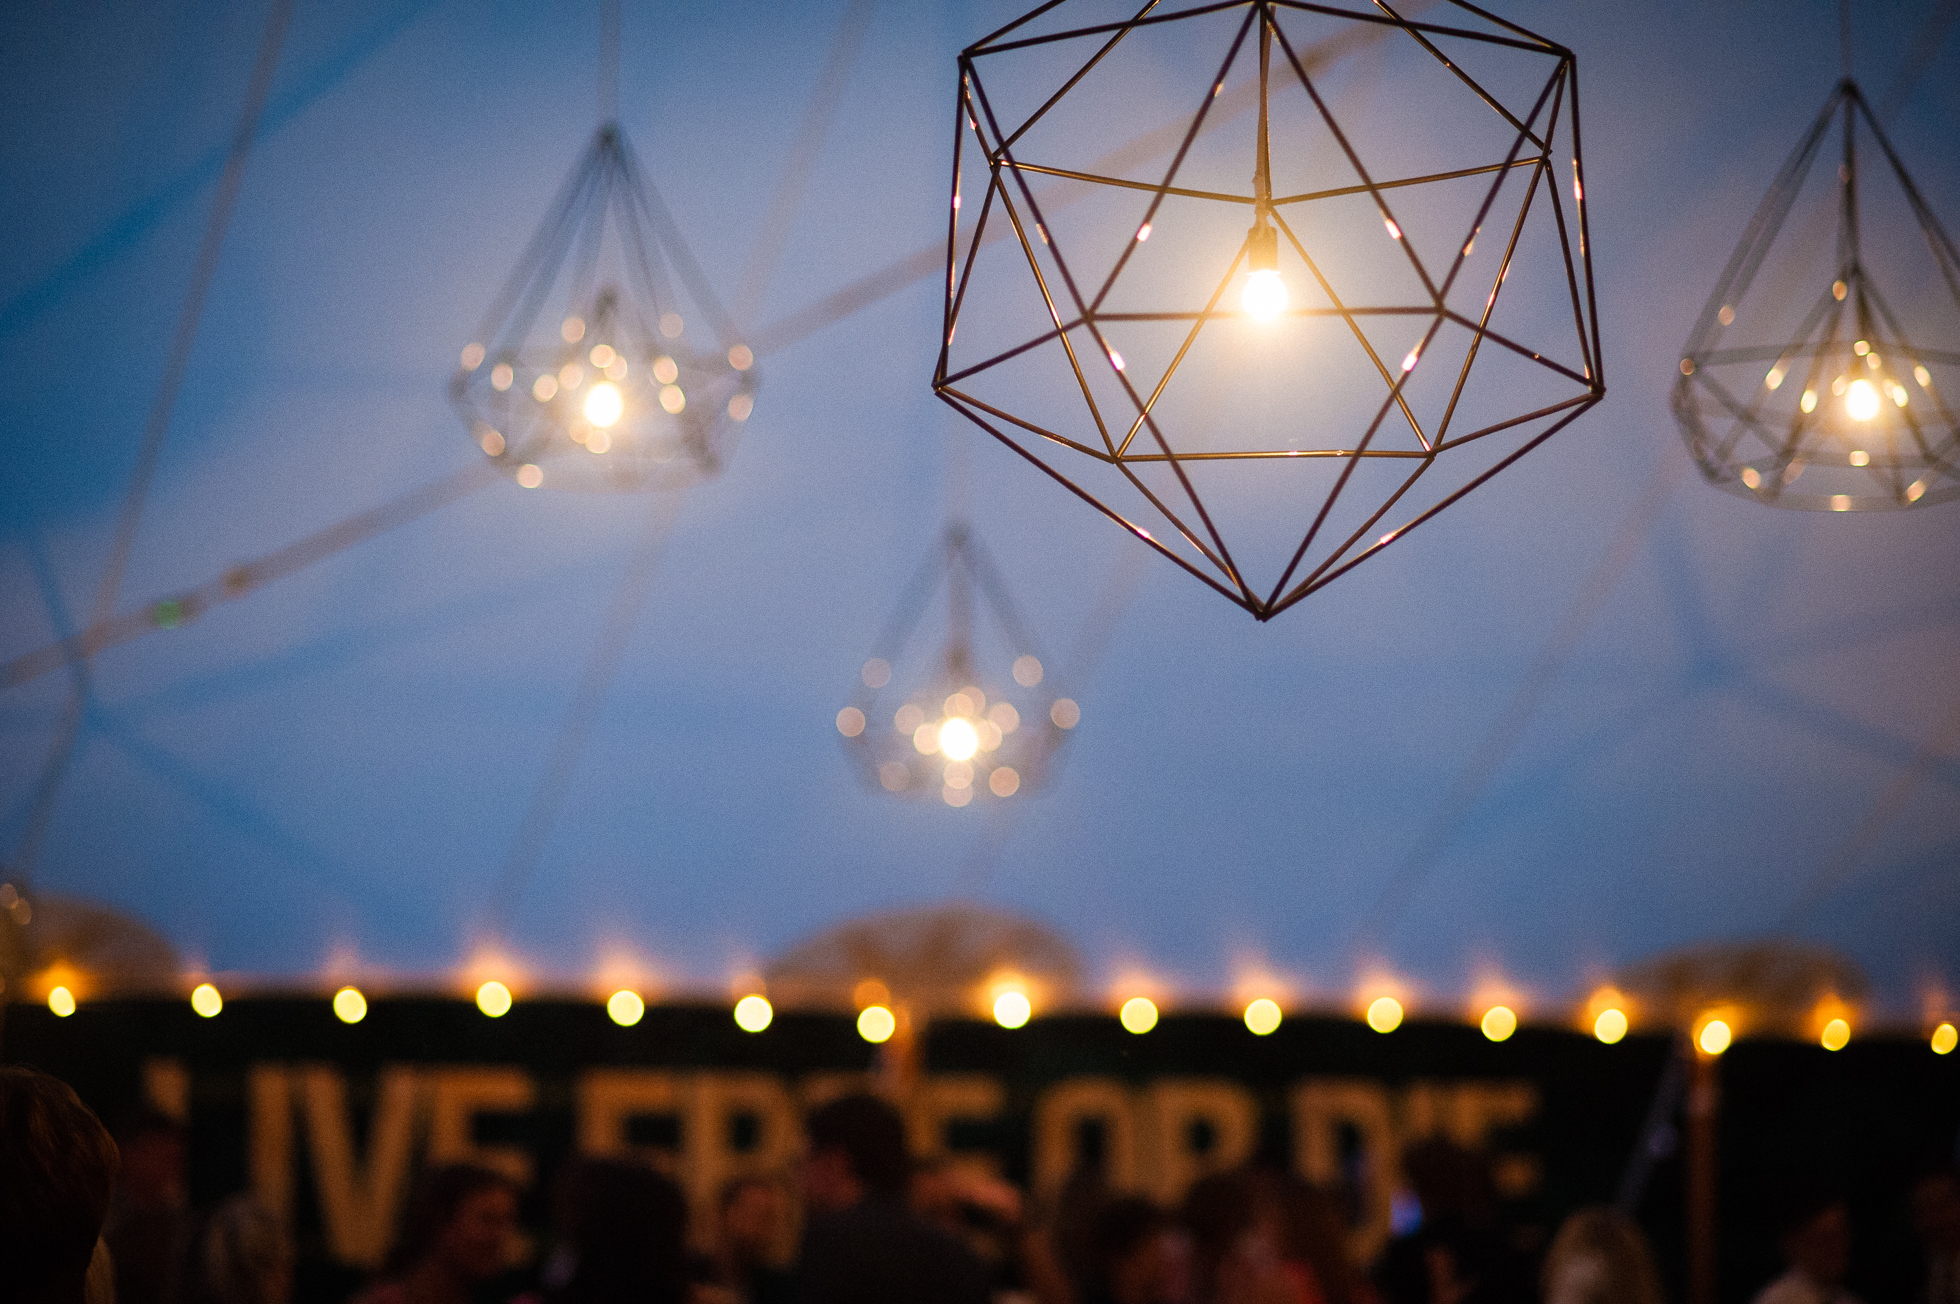 handmade gorgeous lanterns hung from sailcloth tent